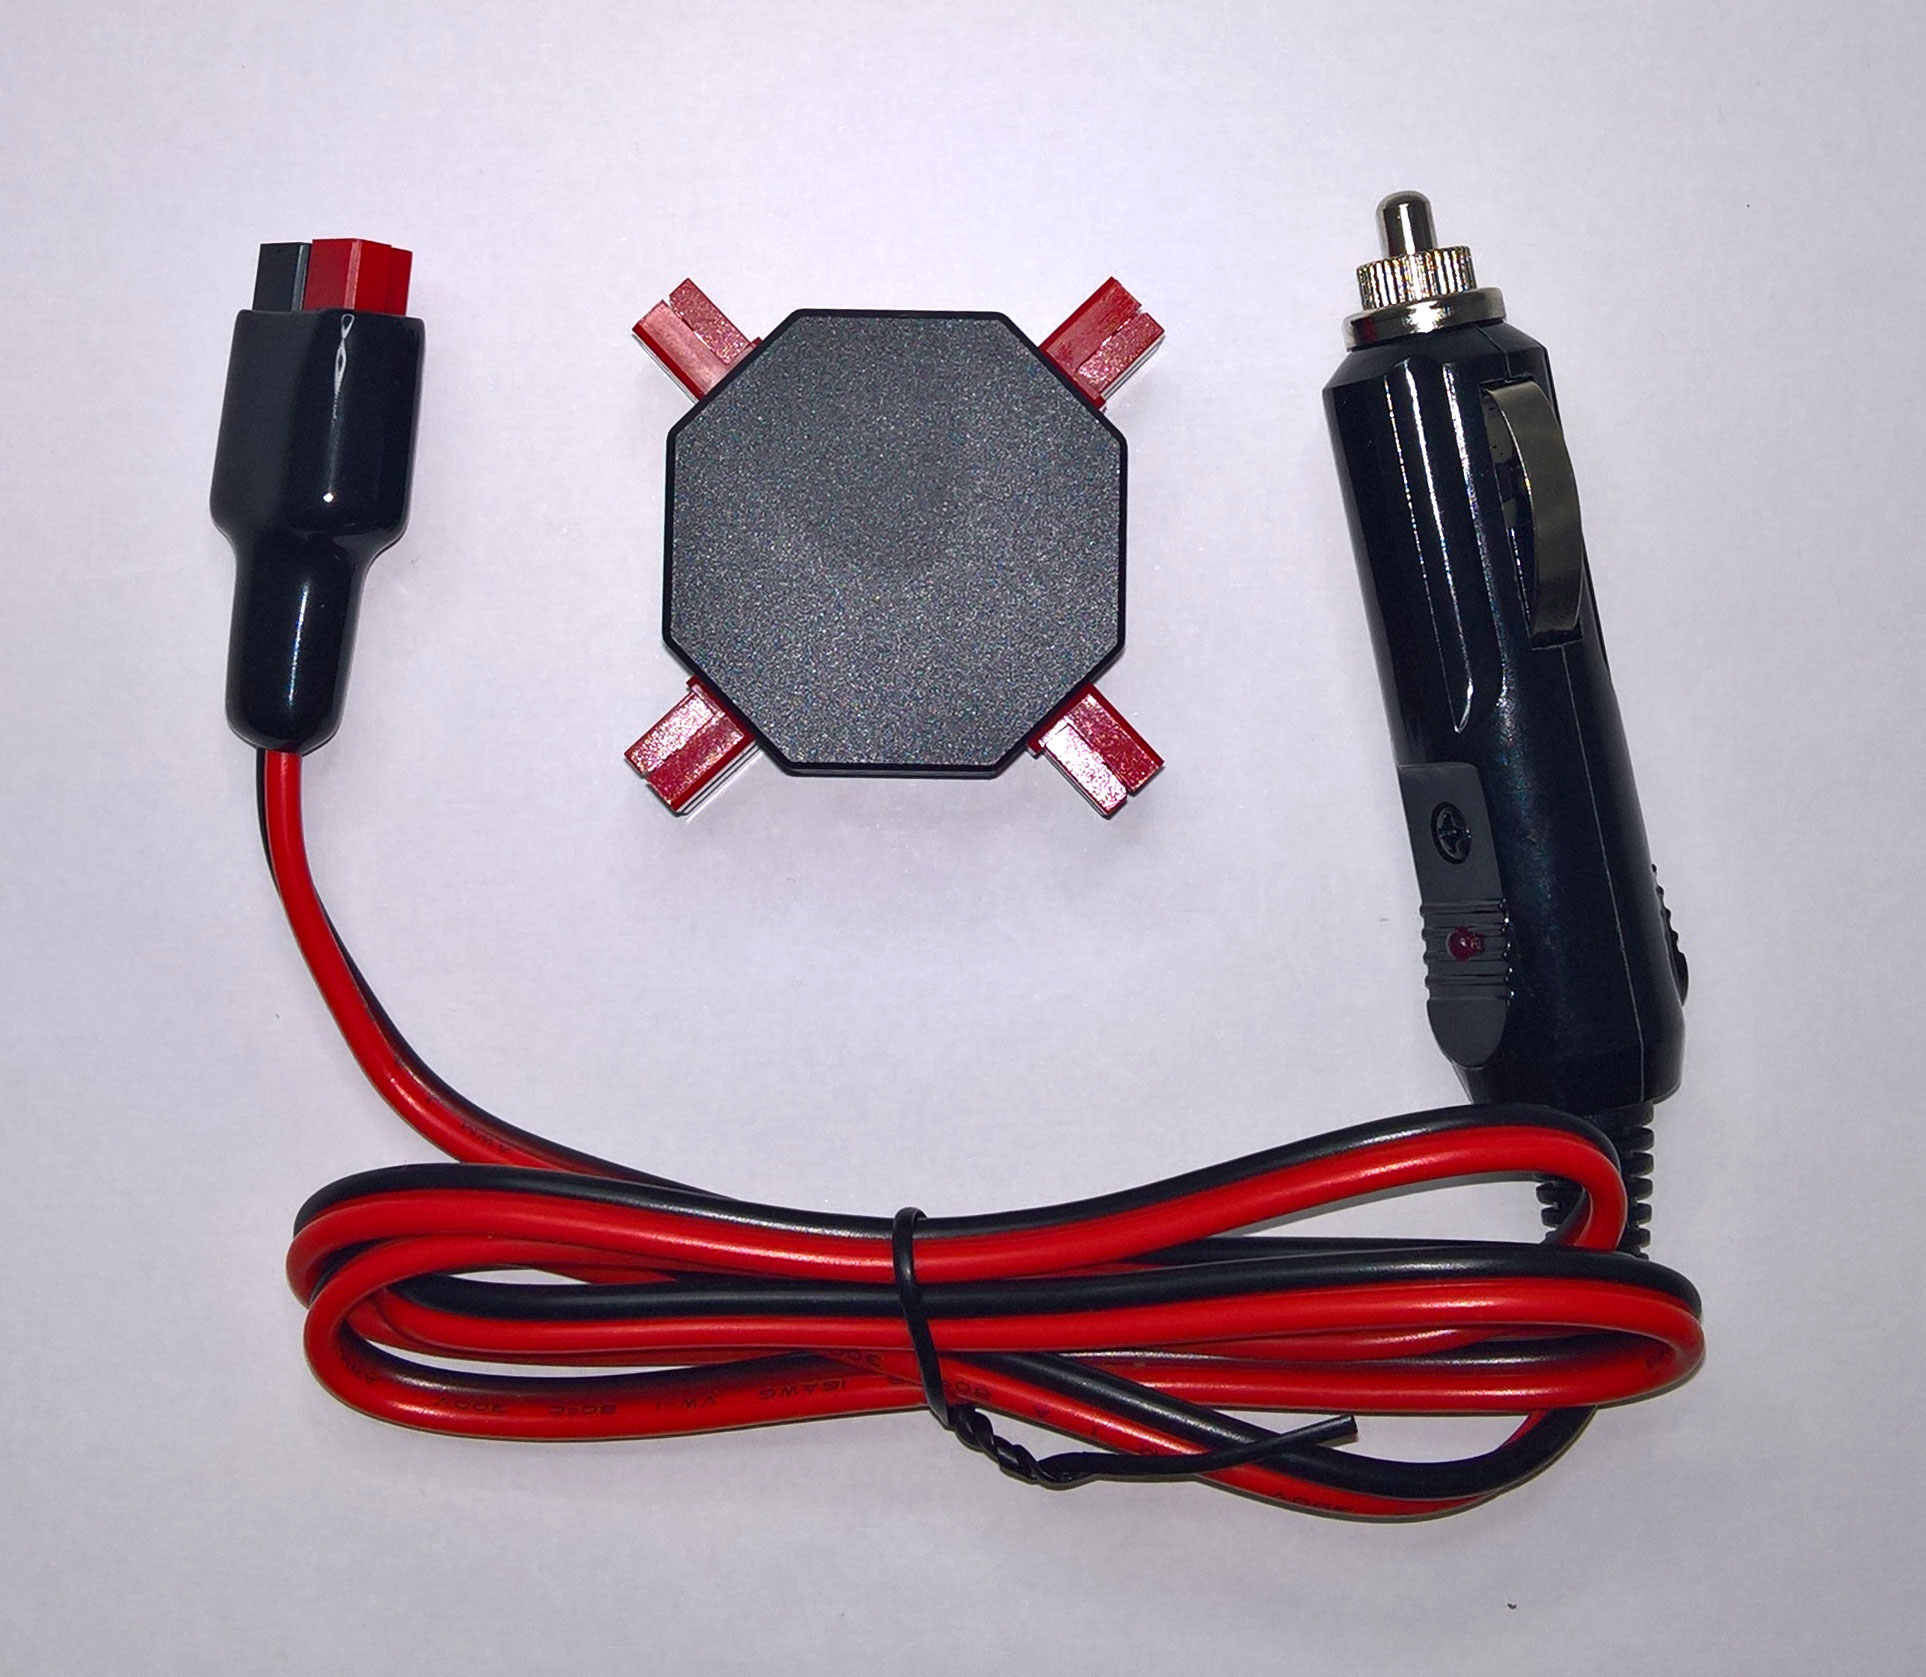 4-way Powerpole compatible splitter with car cigarette lighter power lead